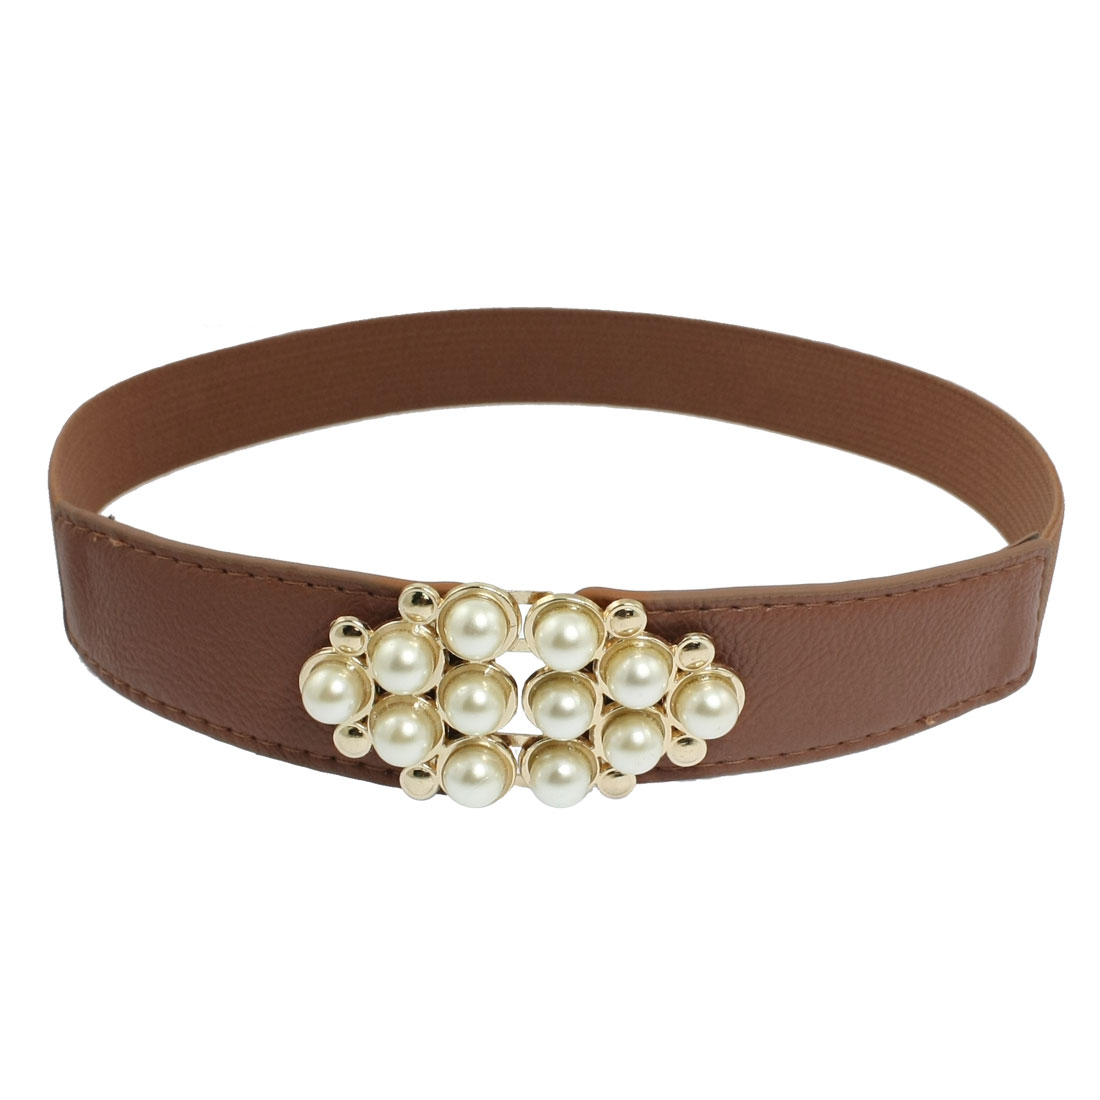 Plastic Pearl Decor Buckle Textured Brown Stretchy Waist Belt for Women